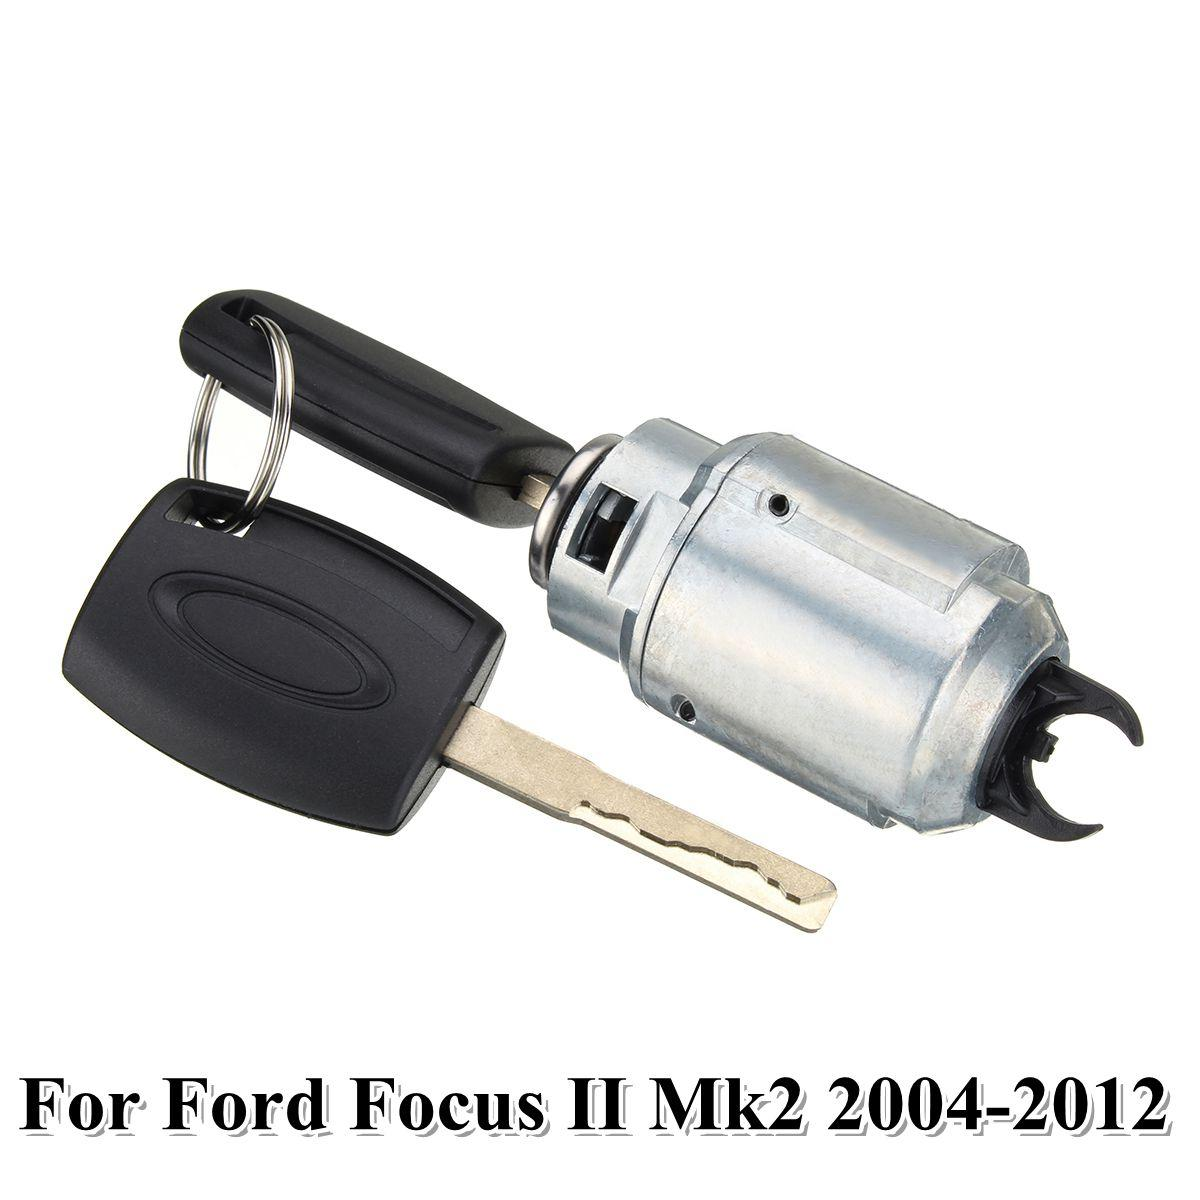 New Car Hood Bonnet Lock Repair Kit With 2 Keys For Ford for Focus II Mk2 2004-2012 4M5AA16B970AB